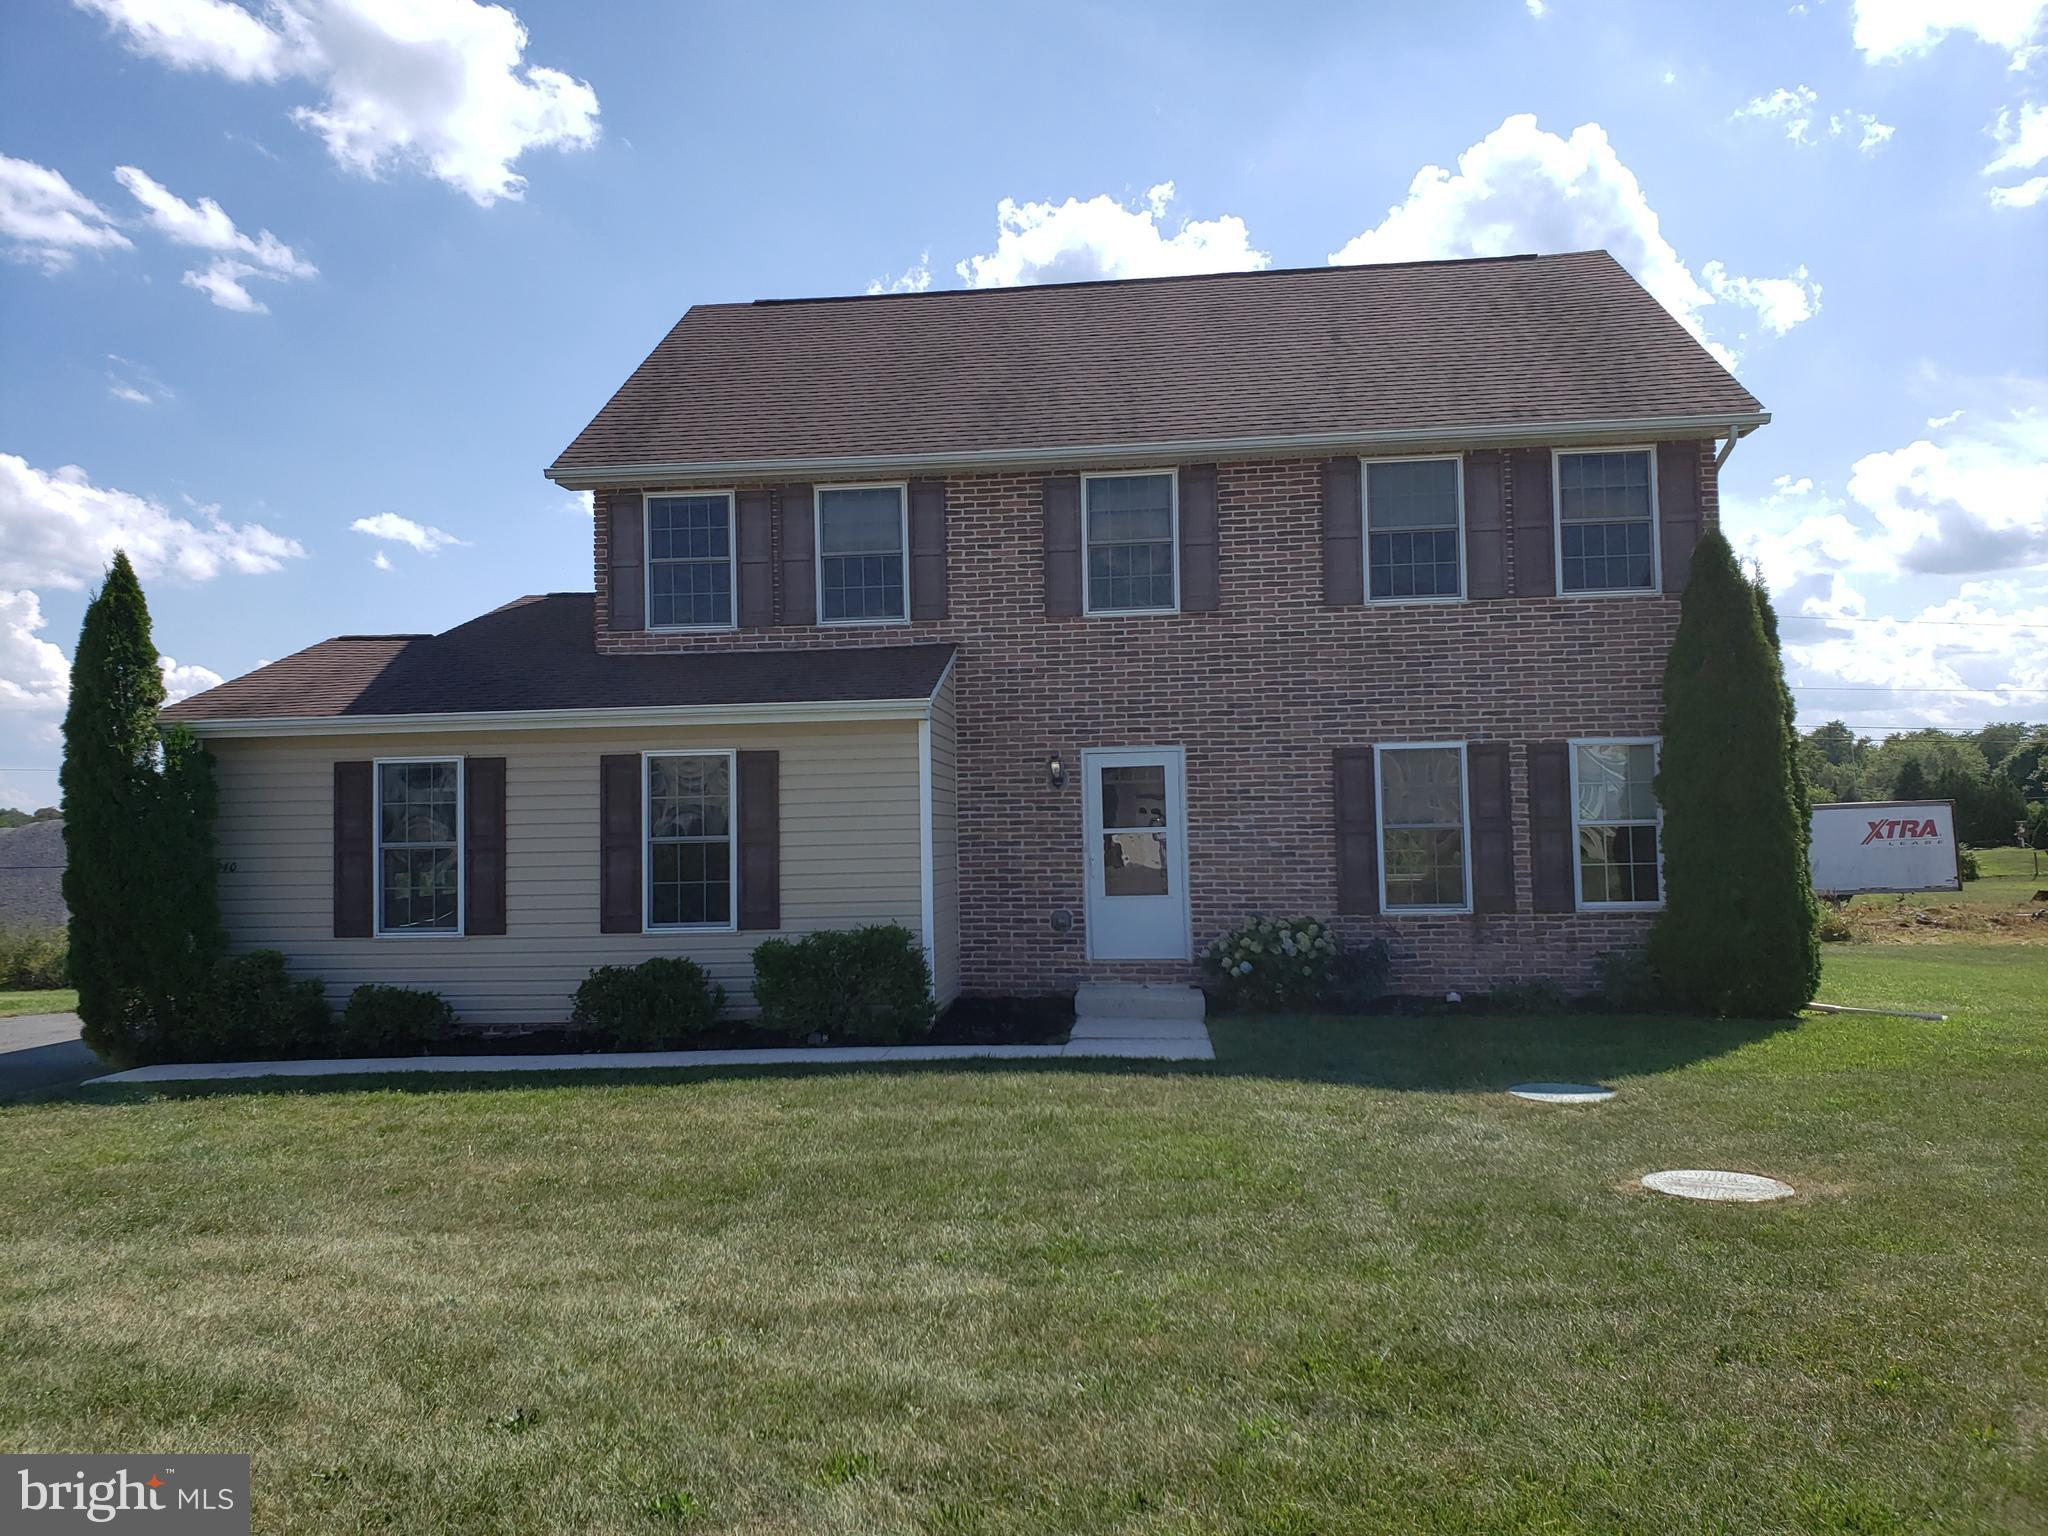 6040 BETTEKER LANE, SAINT THOMAS, PA 17252